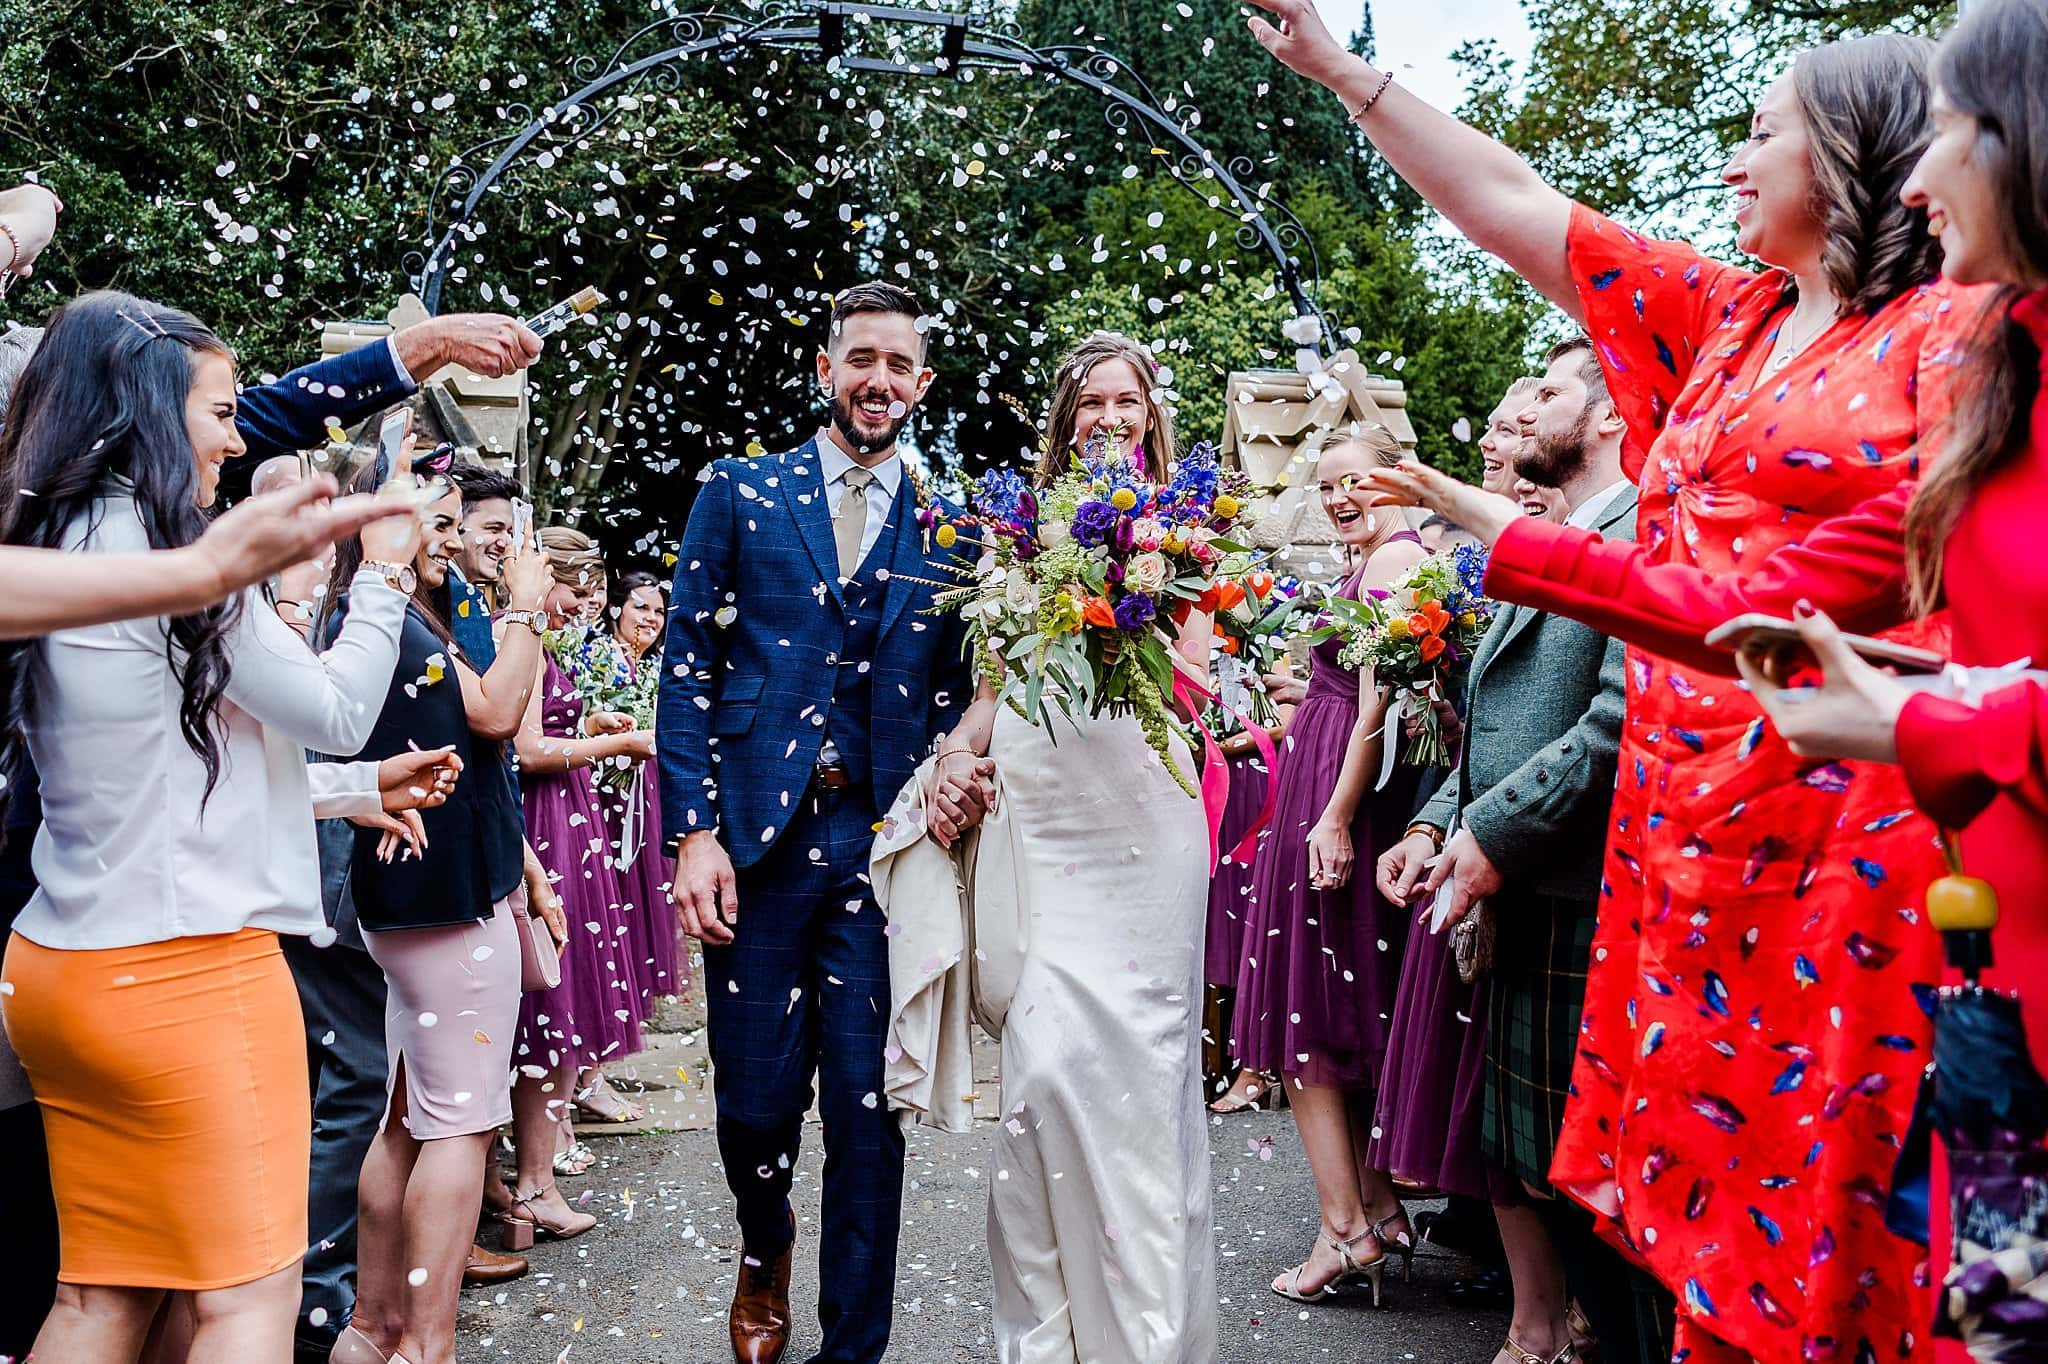 Guests throw confetti over the bride and groom walking away from Rearsby Church